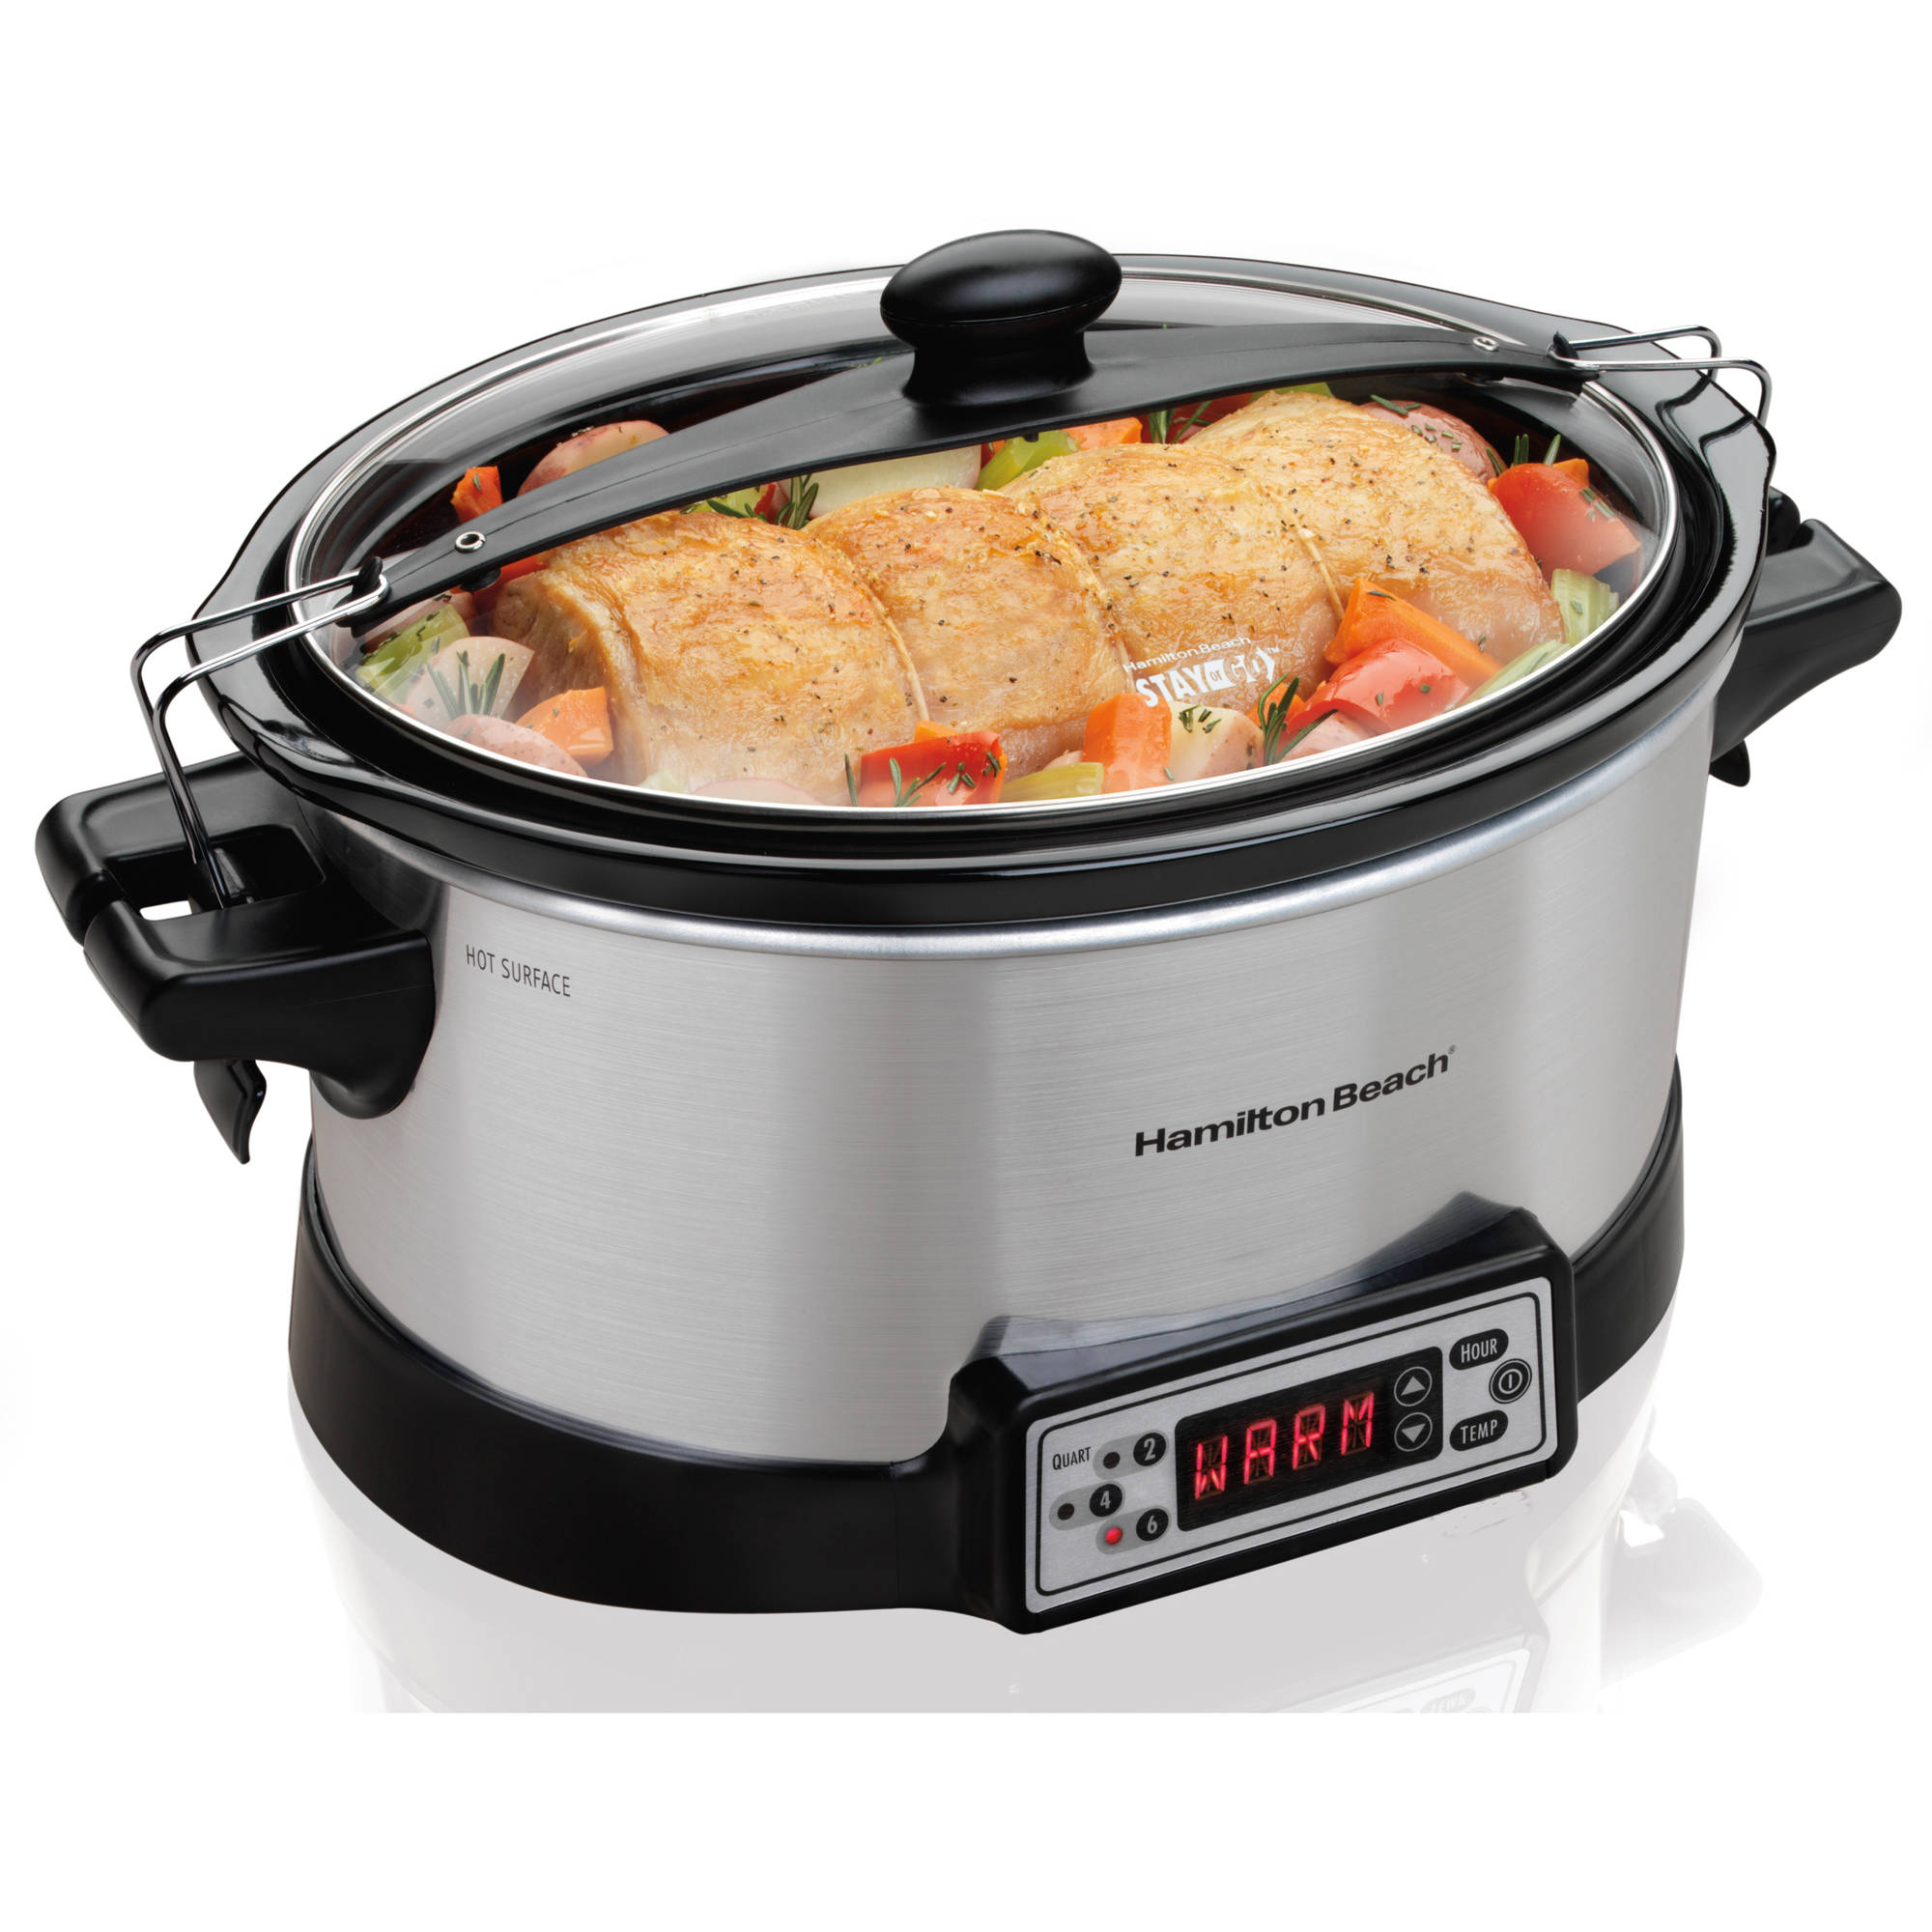 Hamilton Beach 6 Quart Programmable Right Size Slow Cooker with a Stainless Wrap